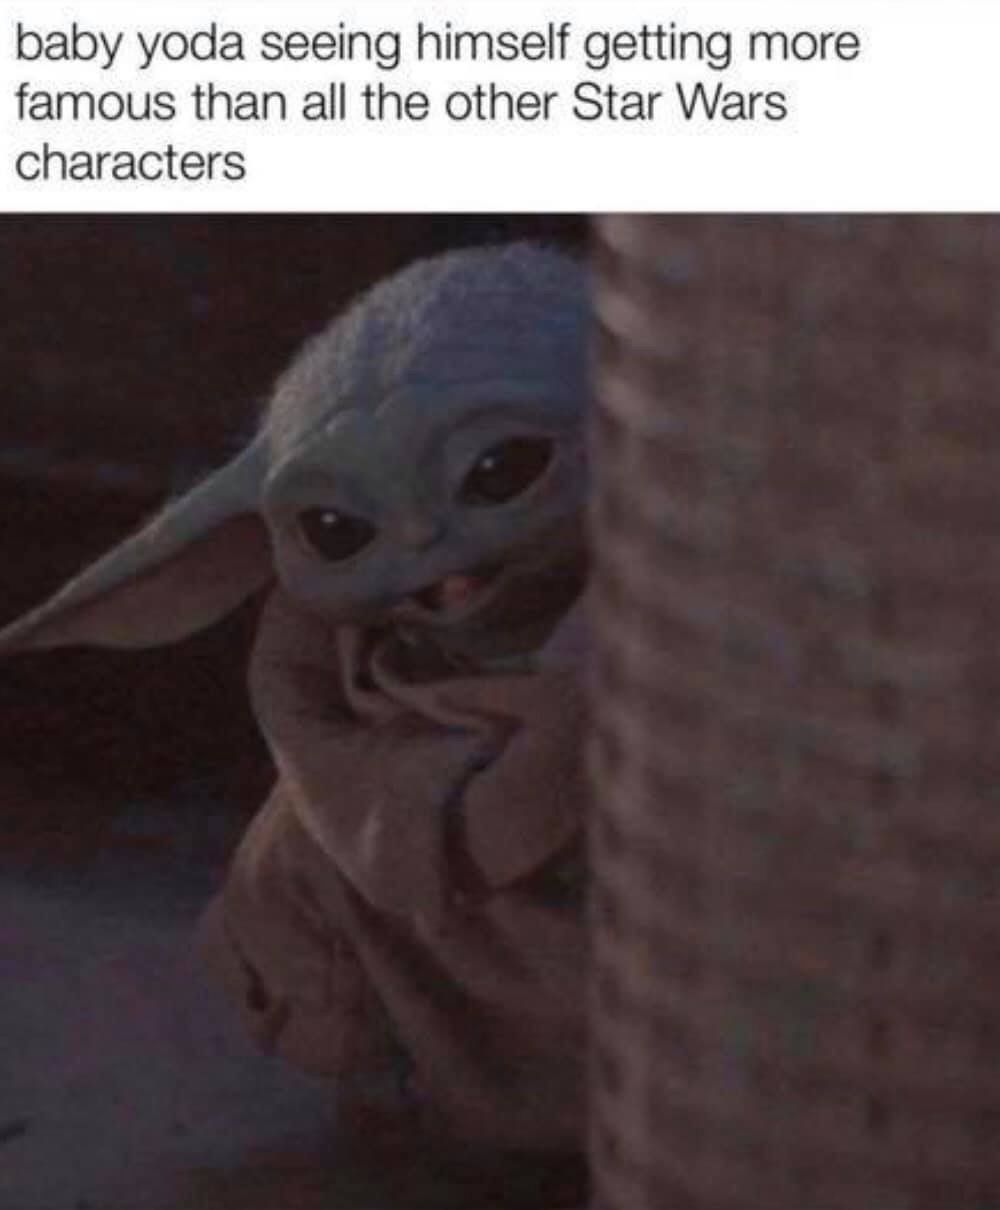 Pin By Sophia Stein On Funny Star Wars Memes Yoda Star Wars Characters